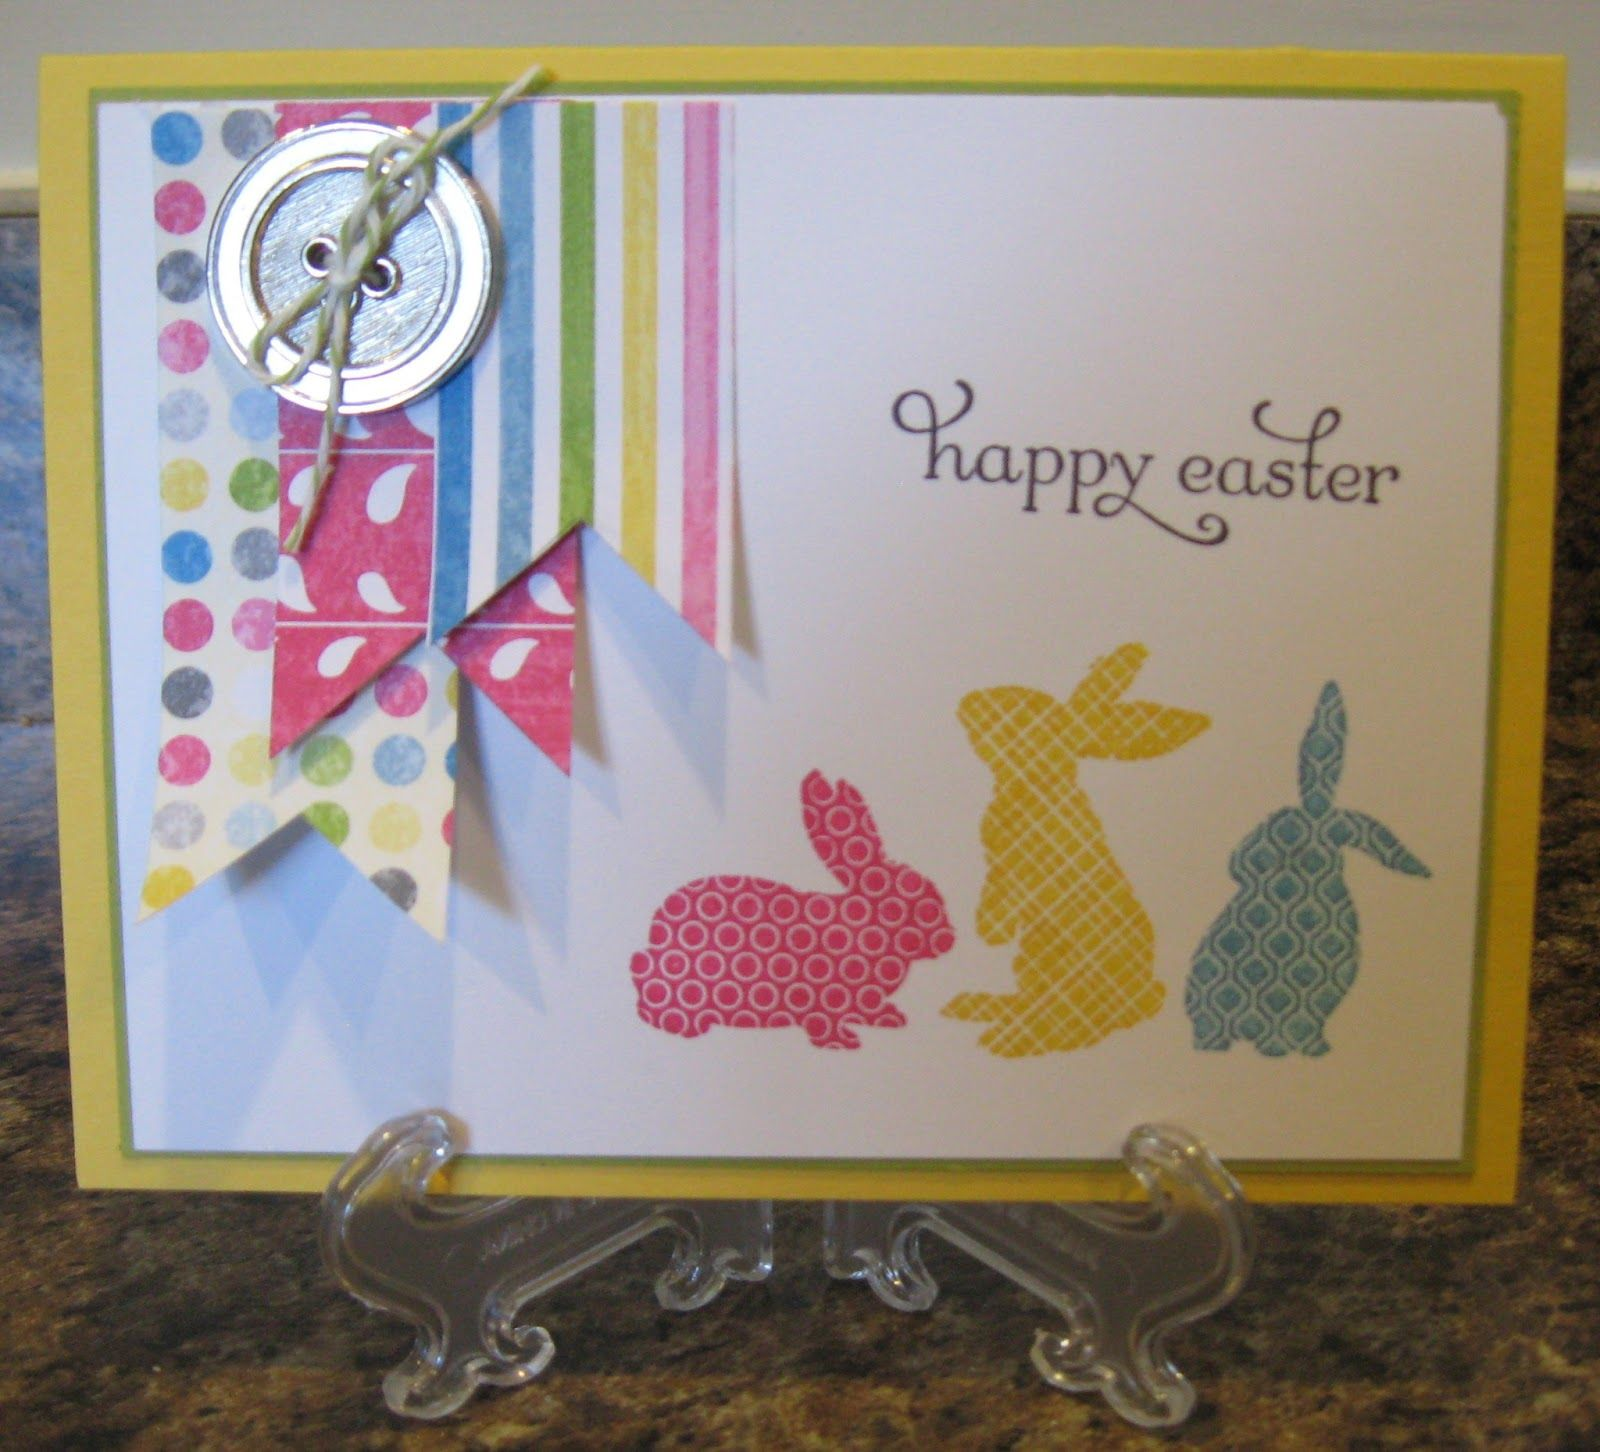 #papercraft #Easter #card. Amy's Addiction: Ears to You!